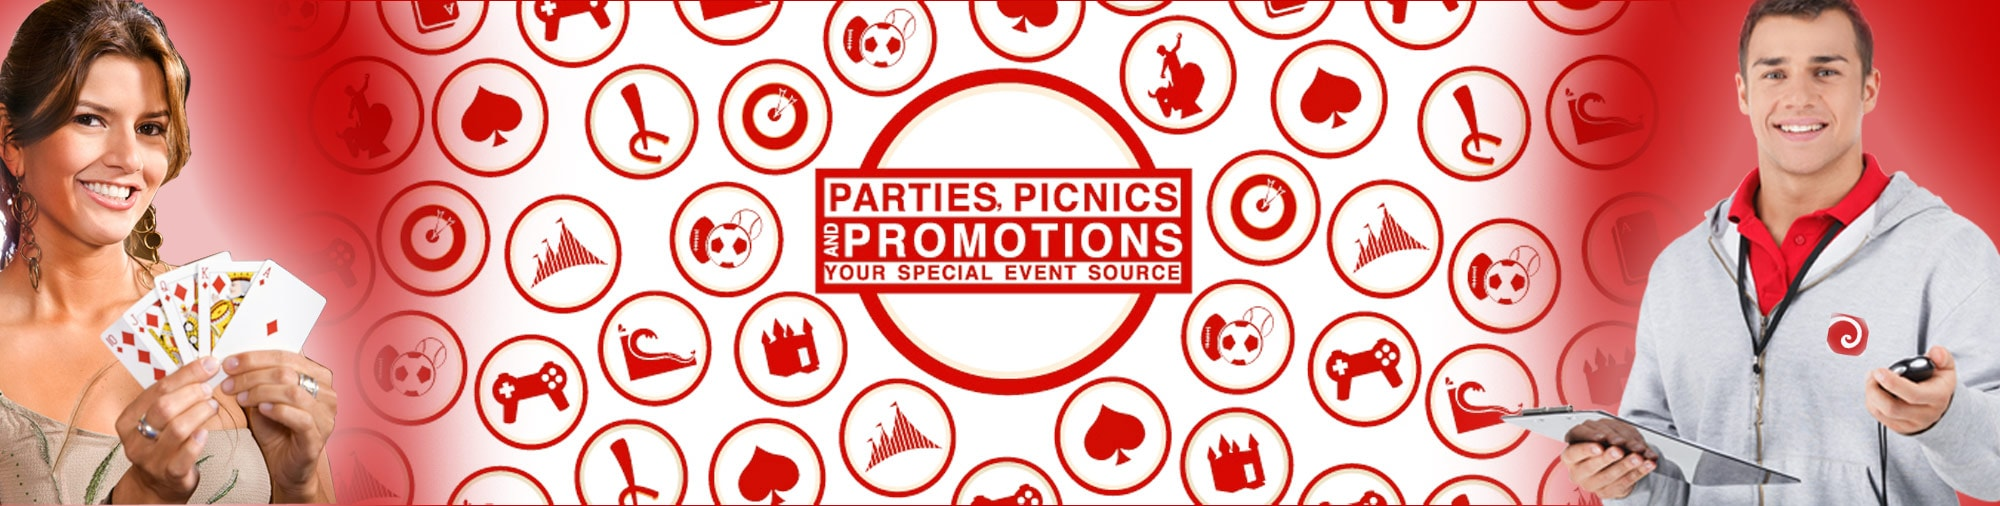 Parties Picnics and Promotions